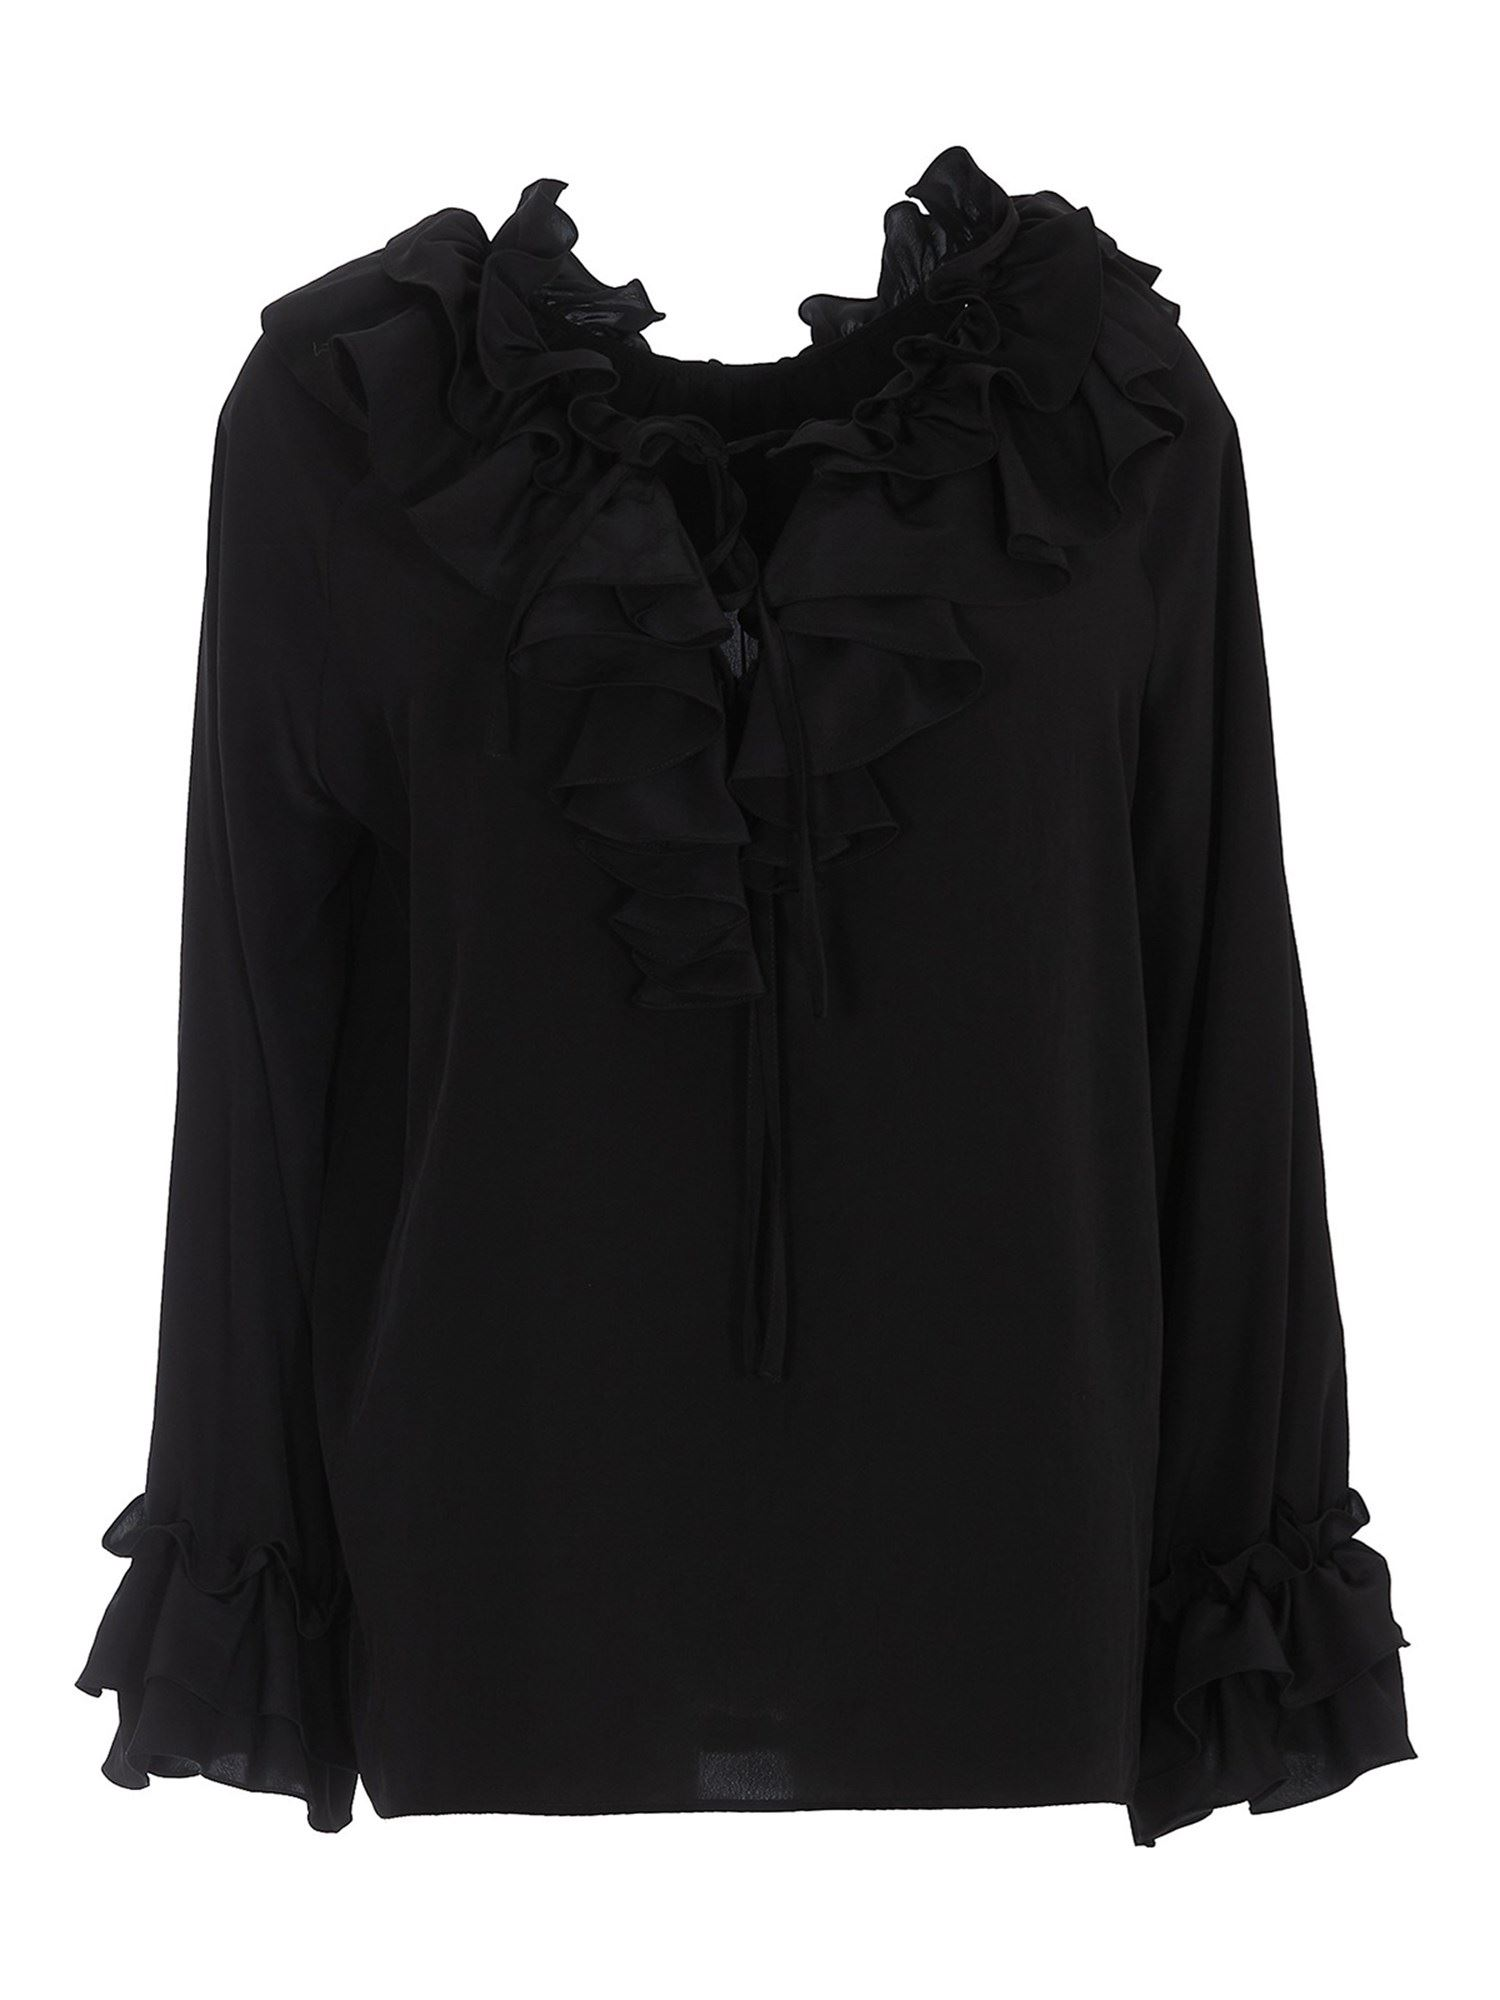 P.a.r.o.s.h. RUFFLE DETAILED BLOUSE IN BLACK